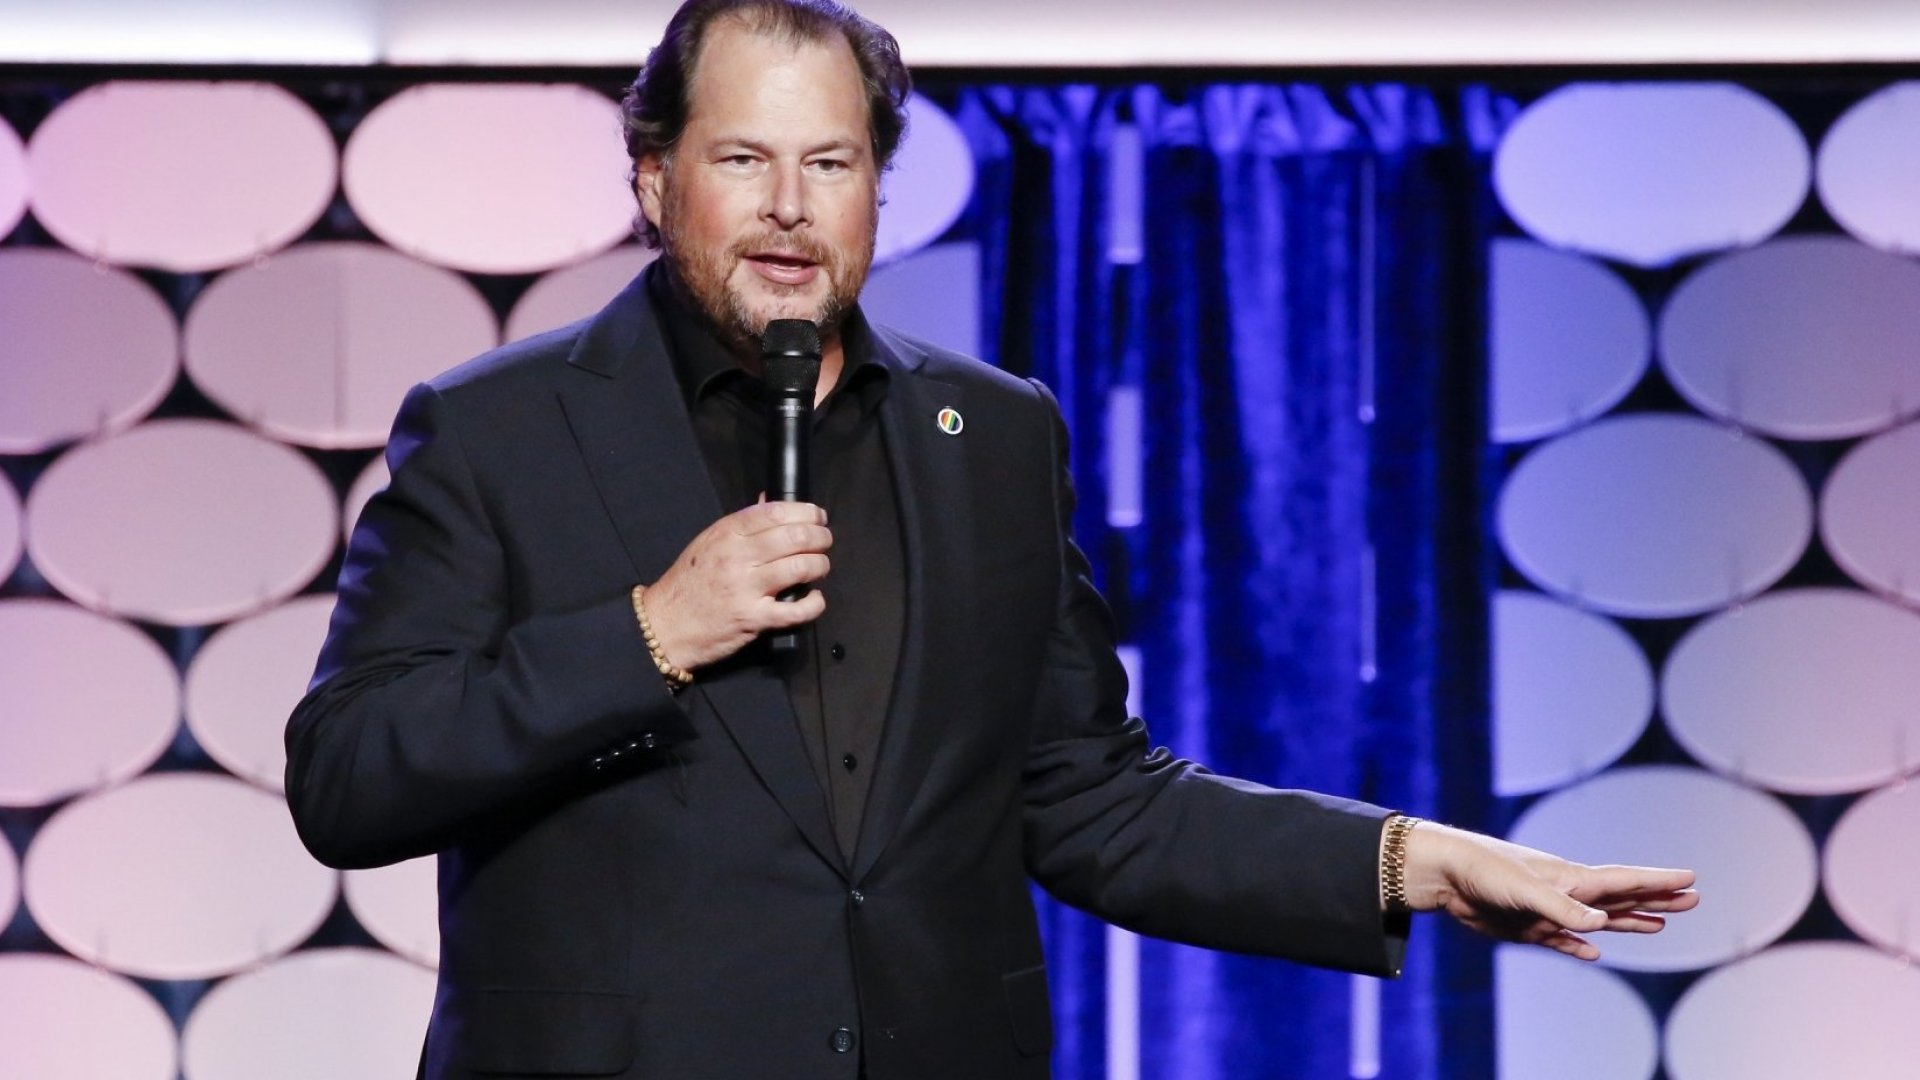 Marc Benioff,Co-Founder of Salesforce, Is Purchasing'Time' Magazine for $190 Million